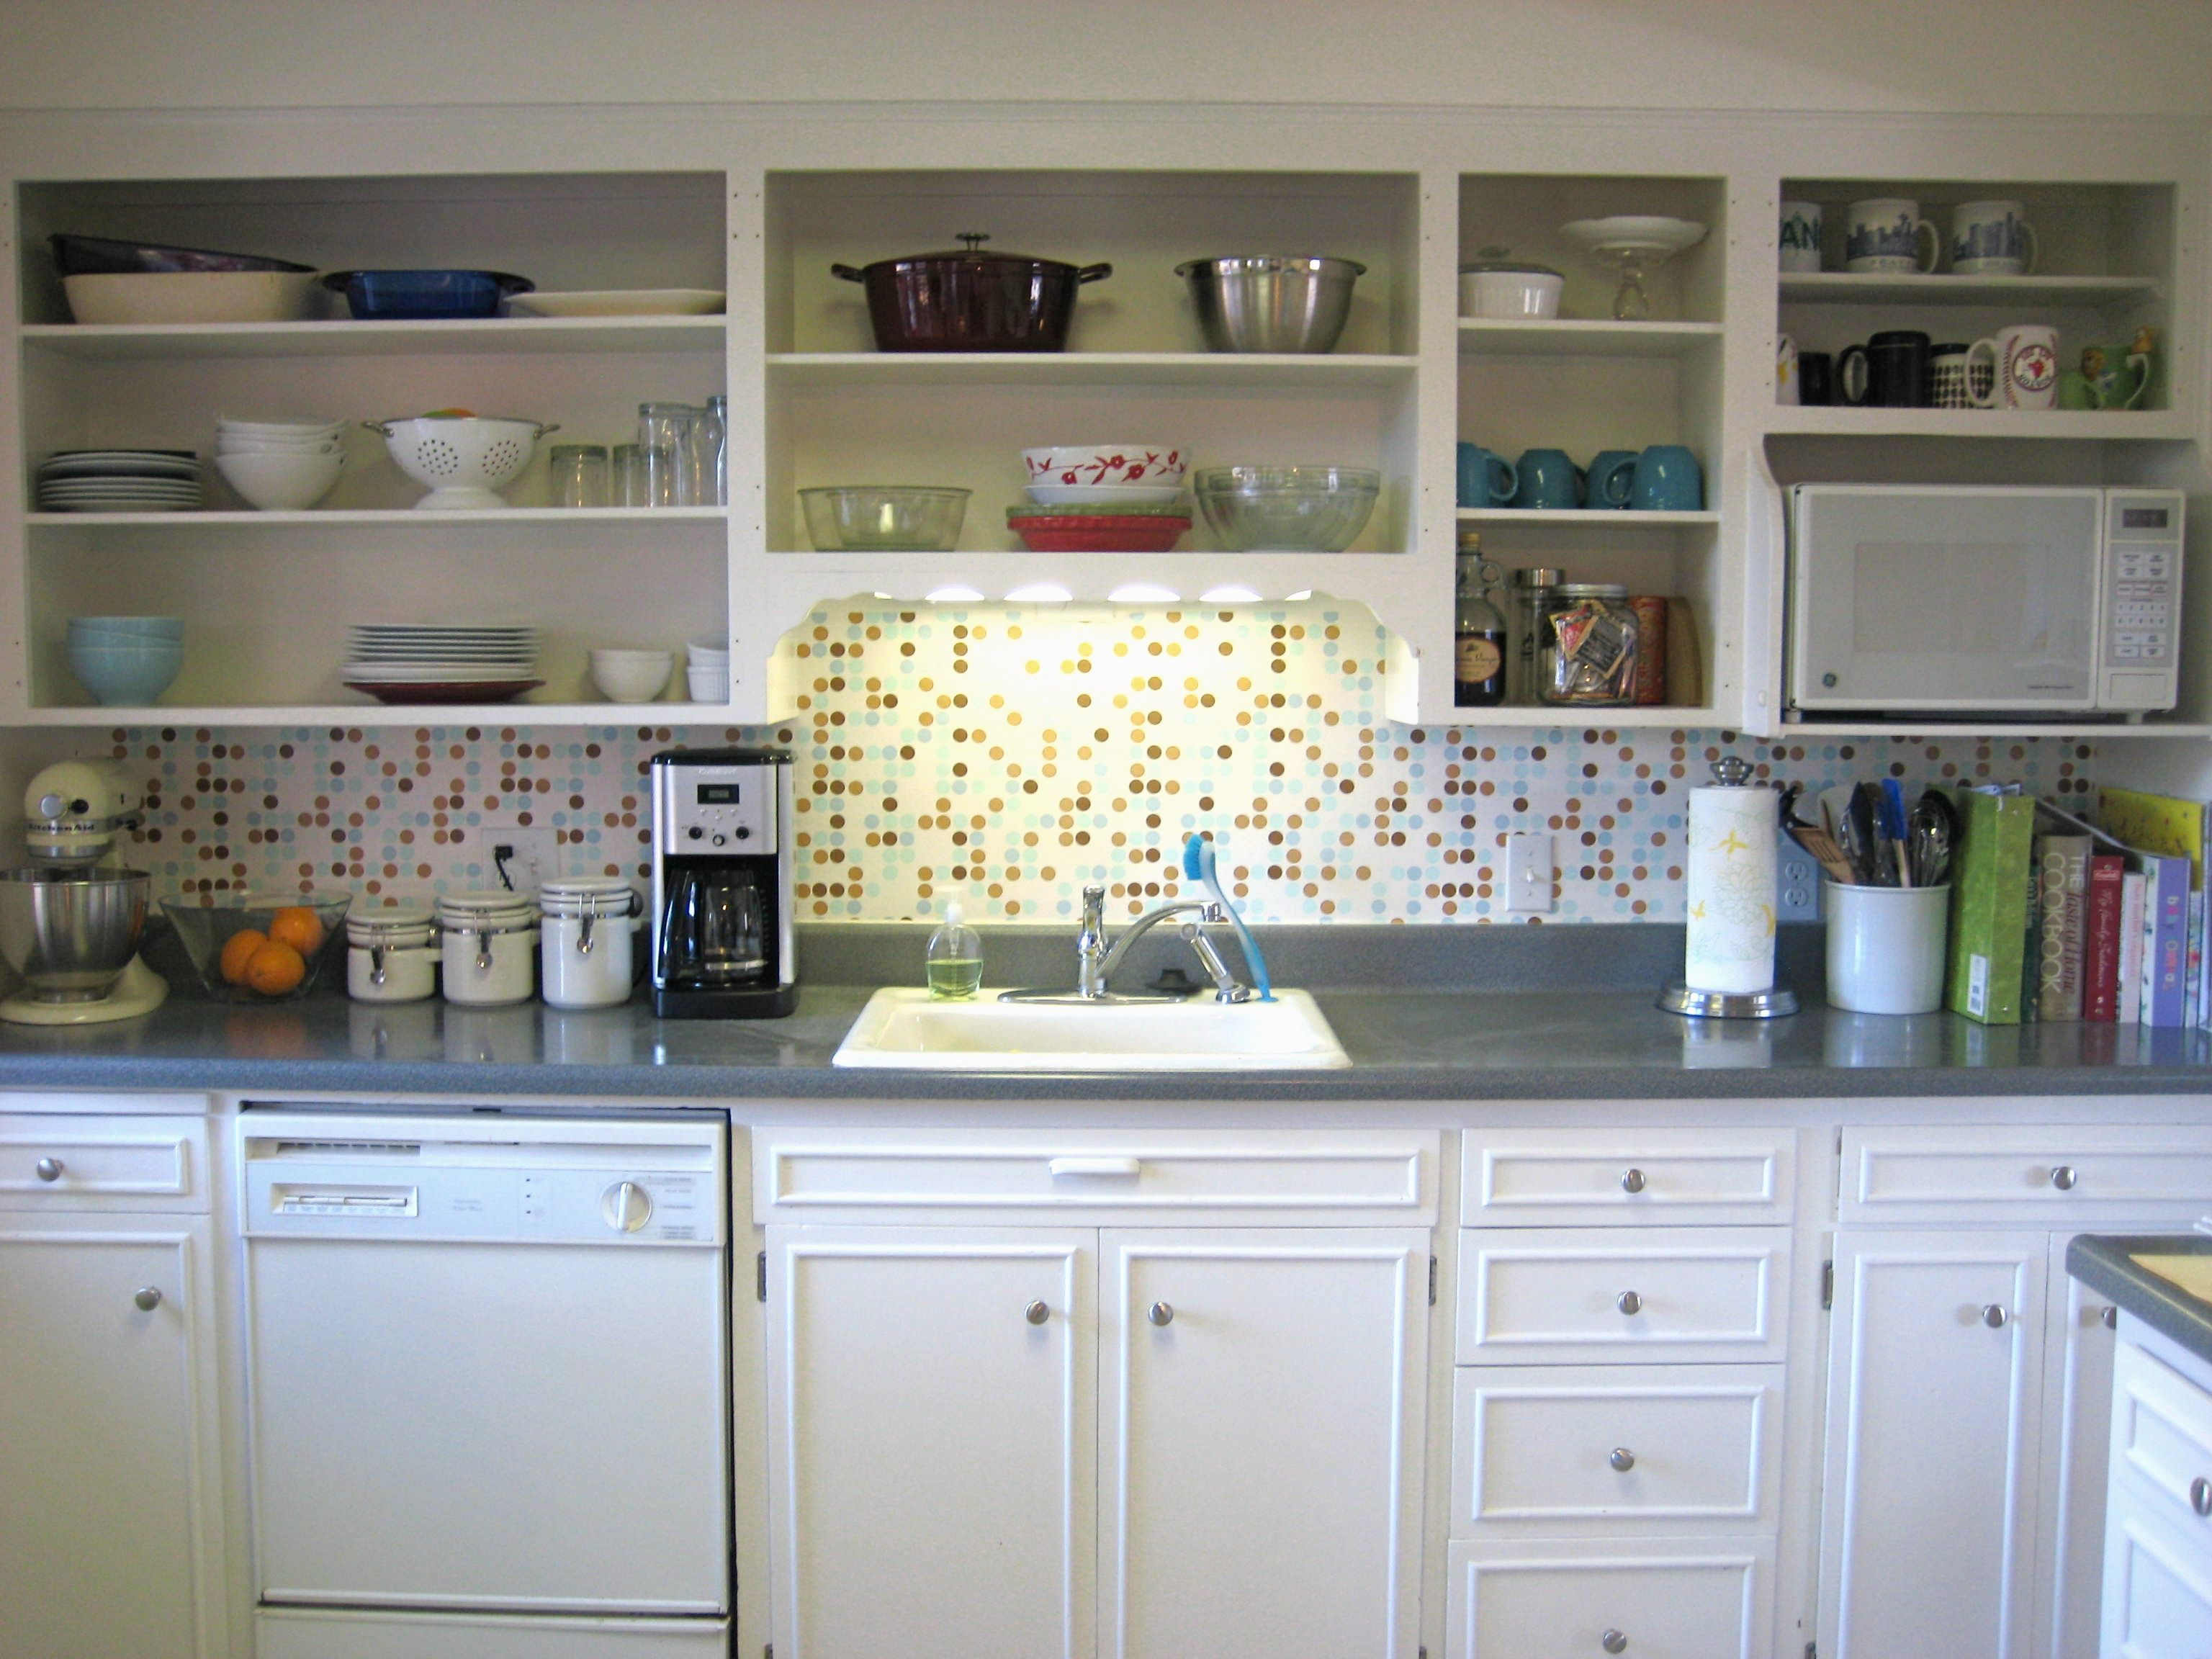 kitchen inspiration with open shelves sliding door design | Best Way to Paint Kitchen Cabinets: A Step by Step Guide # ...